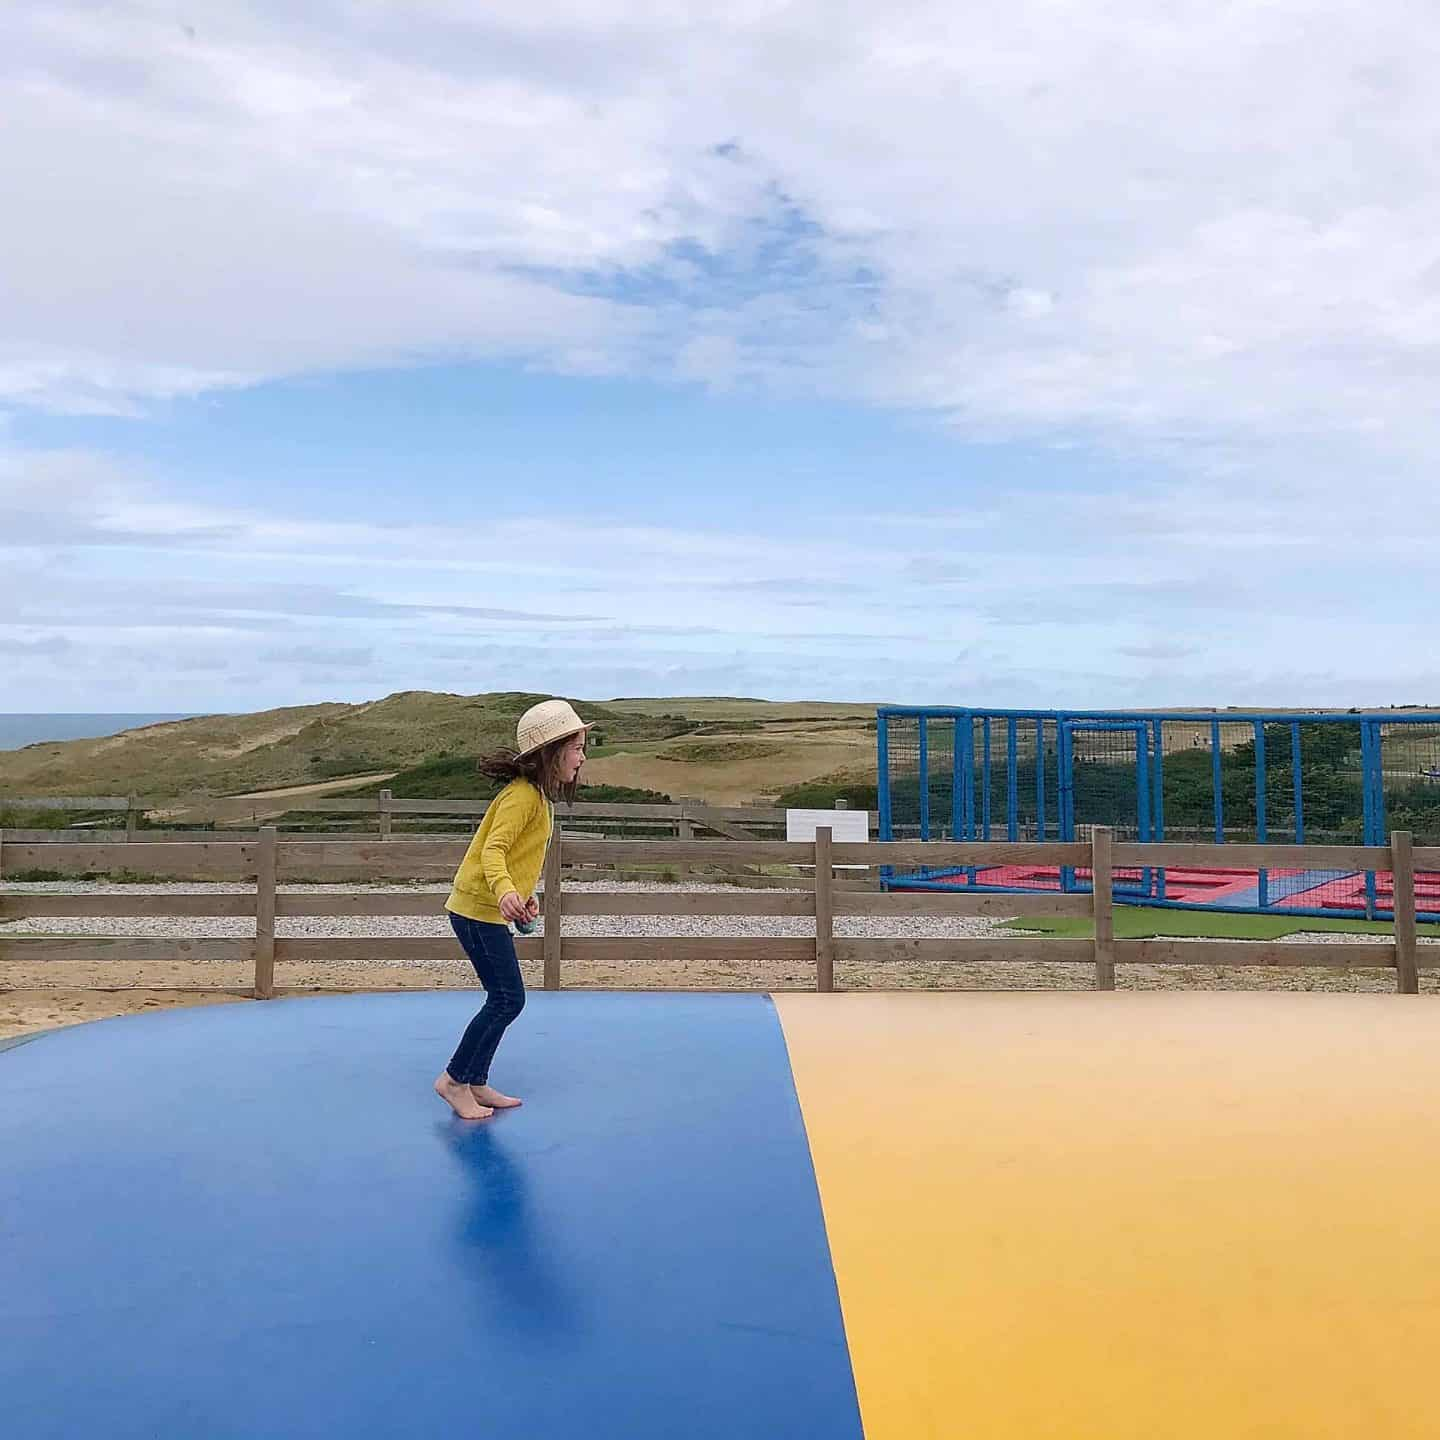 Bouncing at Holywell Bay Fun Park, Cornwall